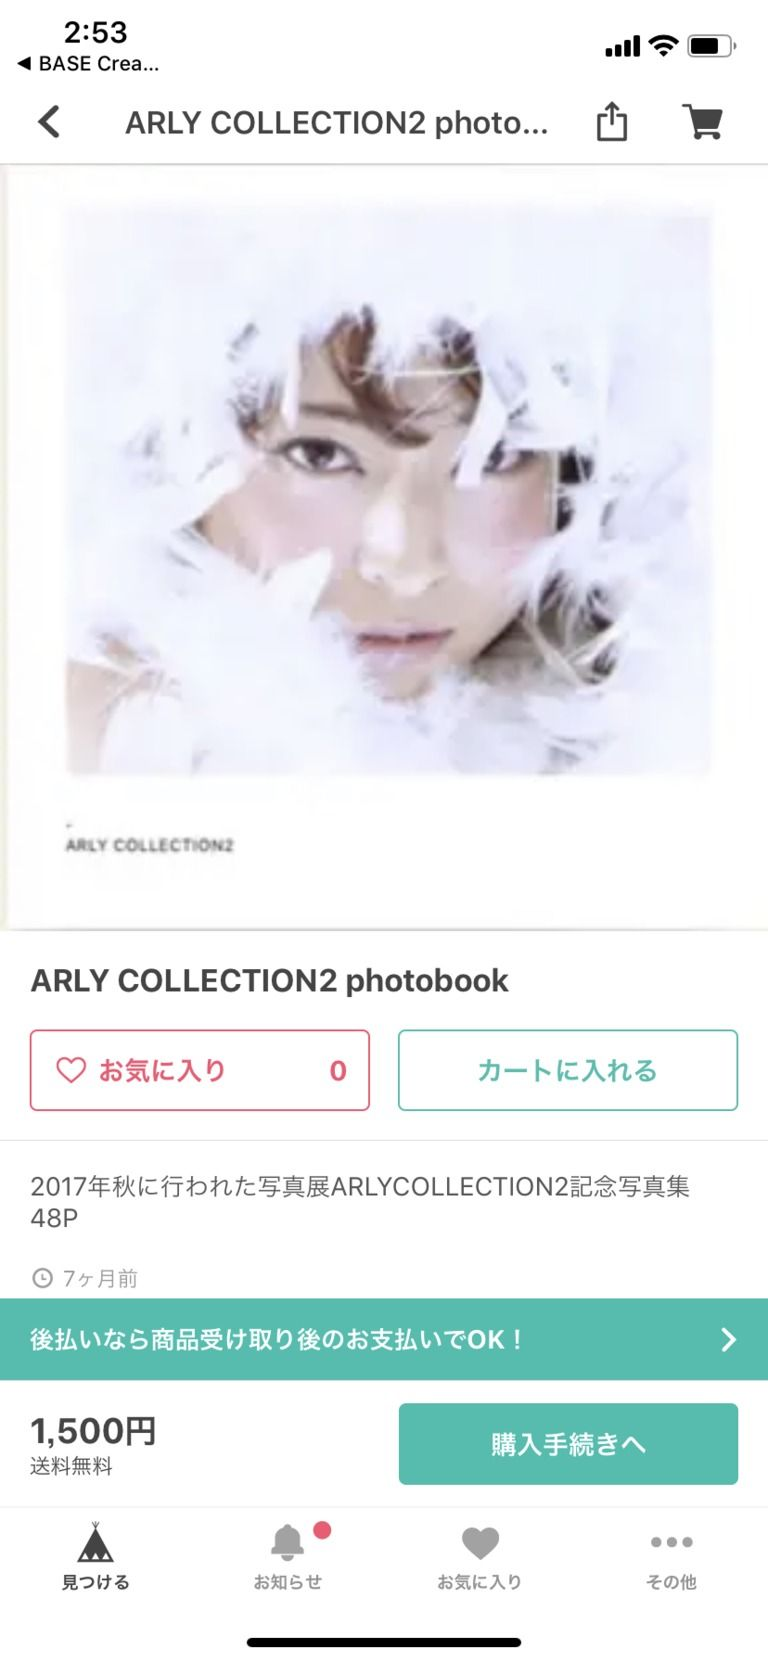 ARLY COLLECTION